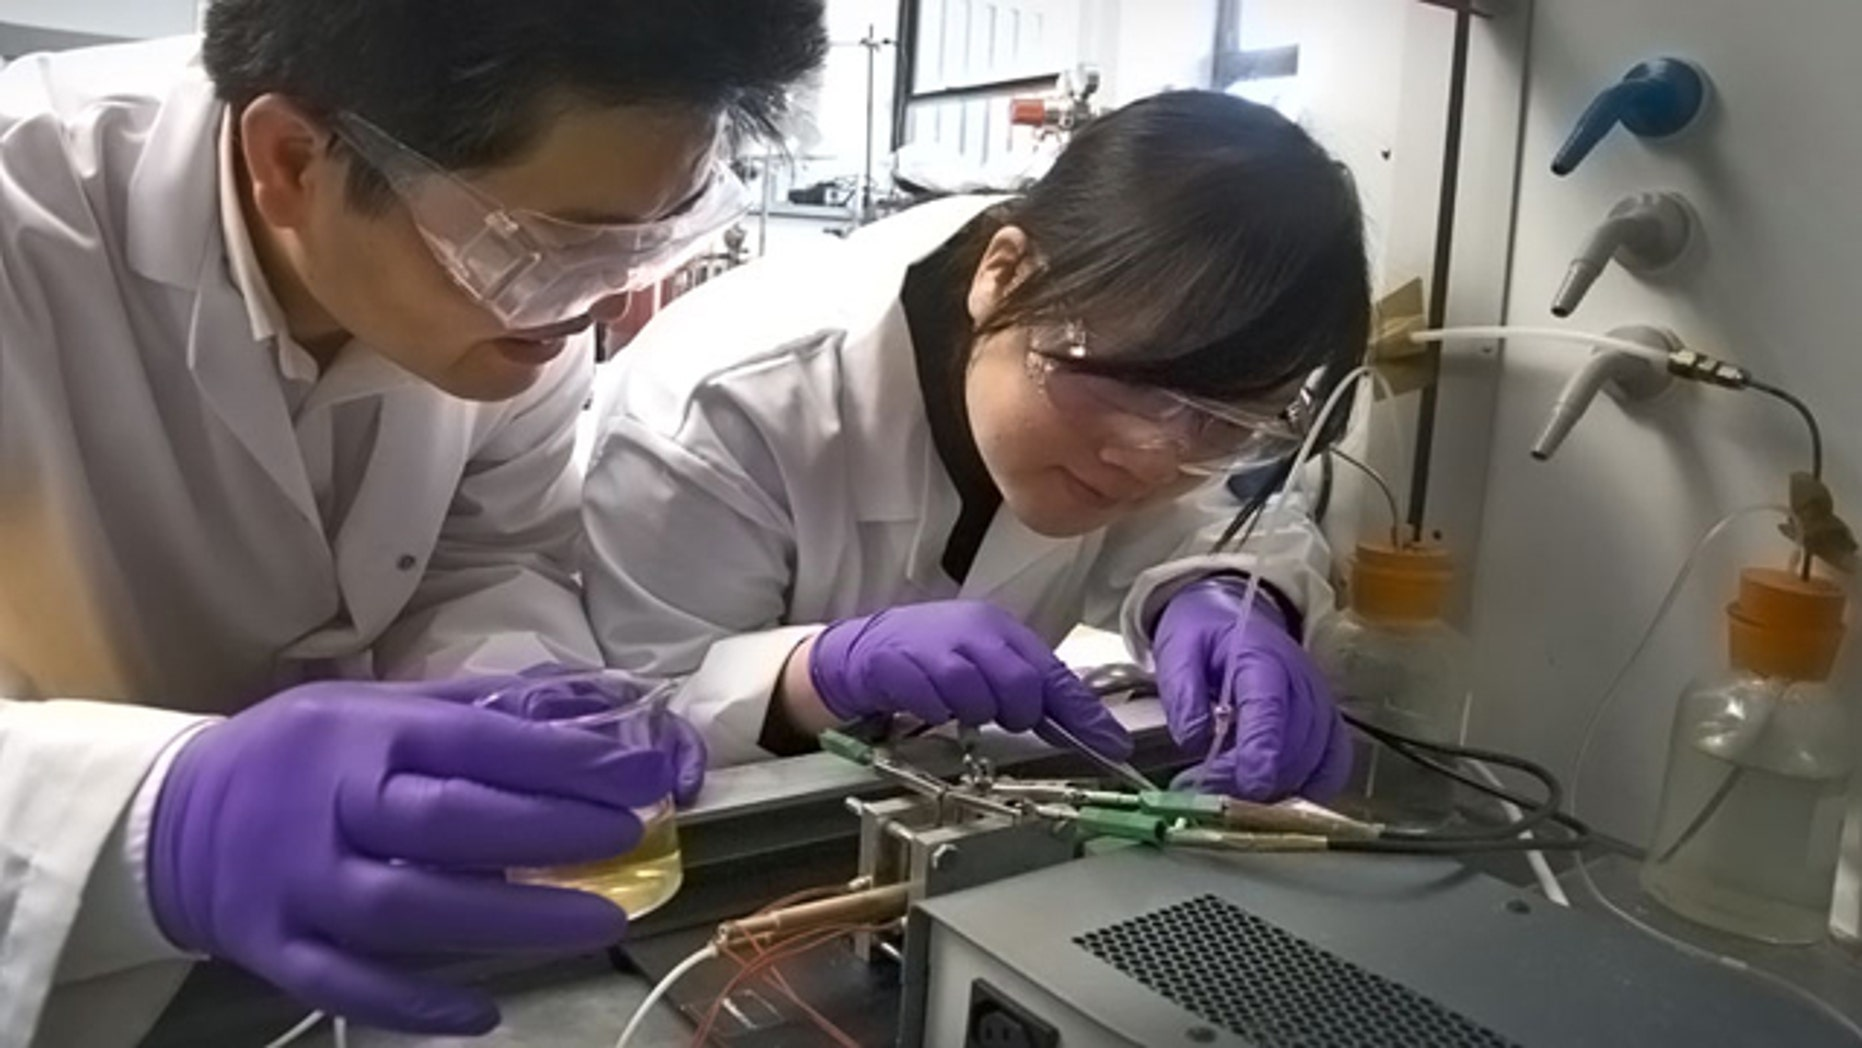 Dr Shanwen Tao and his research partner Dr Rong Lan have been awarded a £130,000 grant to develop their prototype Carbamide Power System